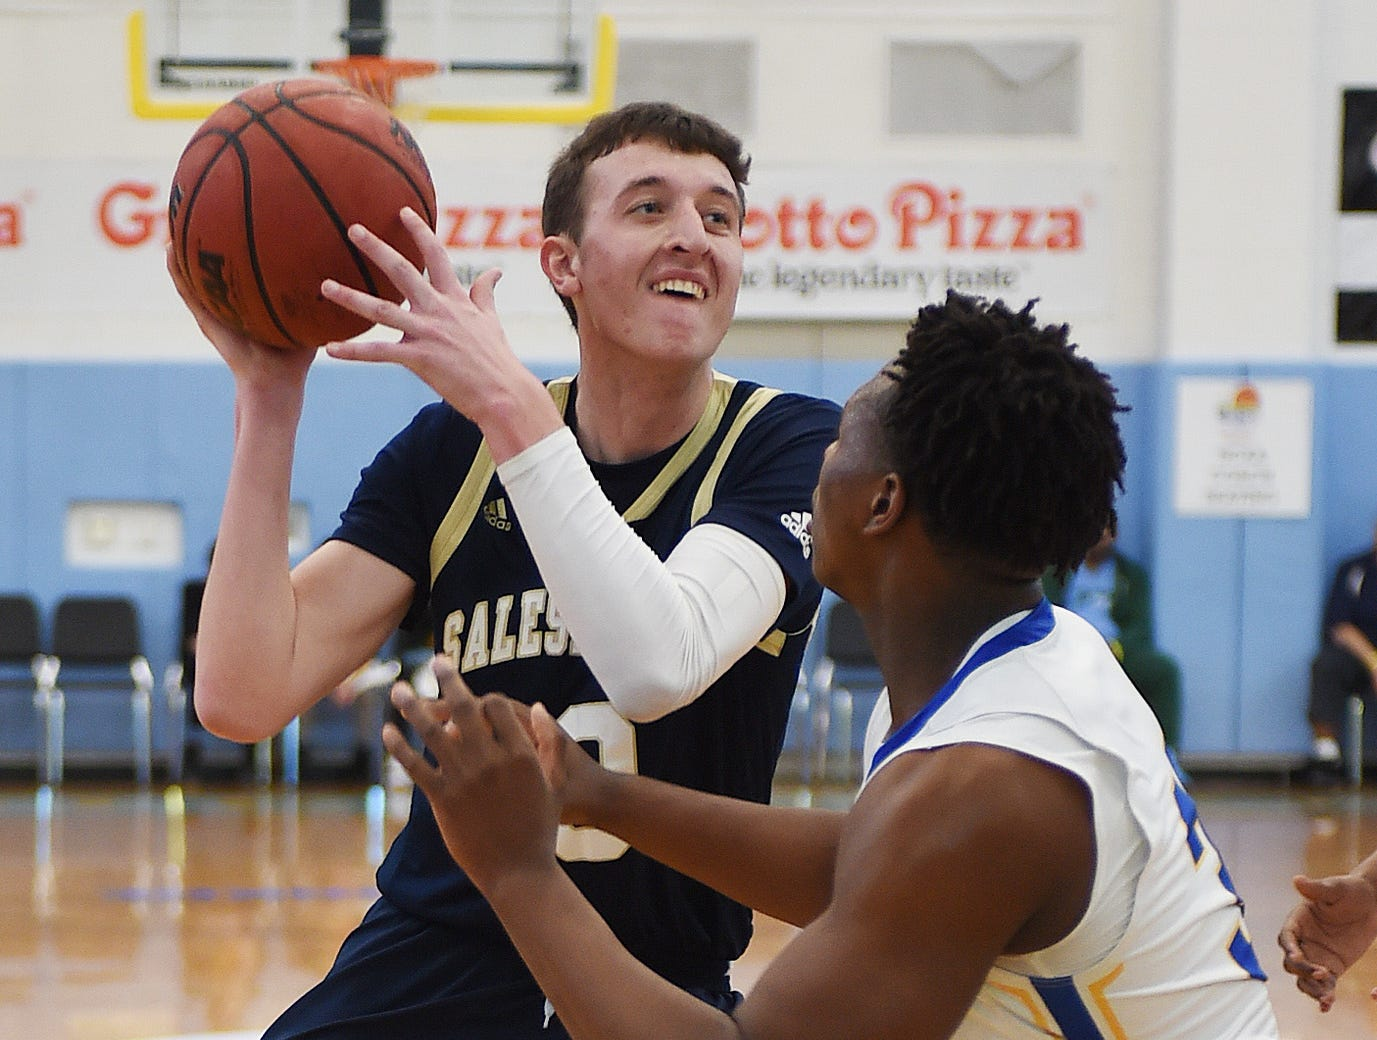 Sallies #10 Jack Brown moves the ball for a basket over CR's #33 William Burke as Slam Dunk to the Beach kicked off on Thursday December 27th with the opening game of Caesar Rodney playing Salesianum at the tournament held at Cape Henlopen High School.